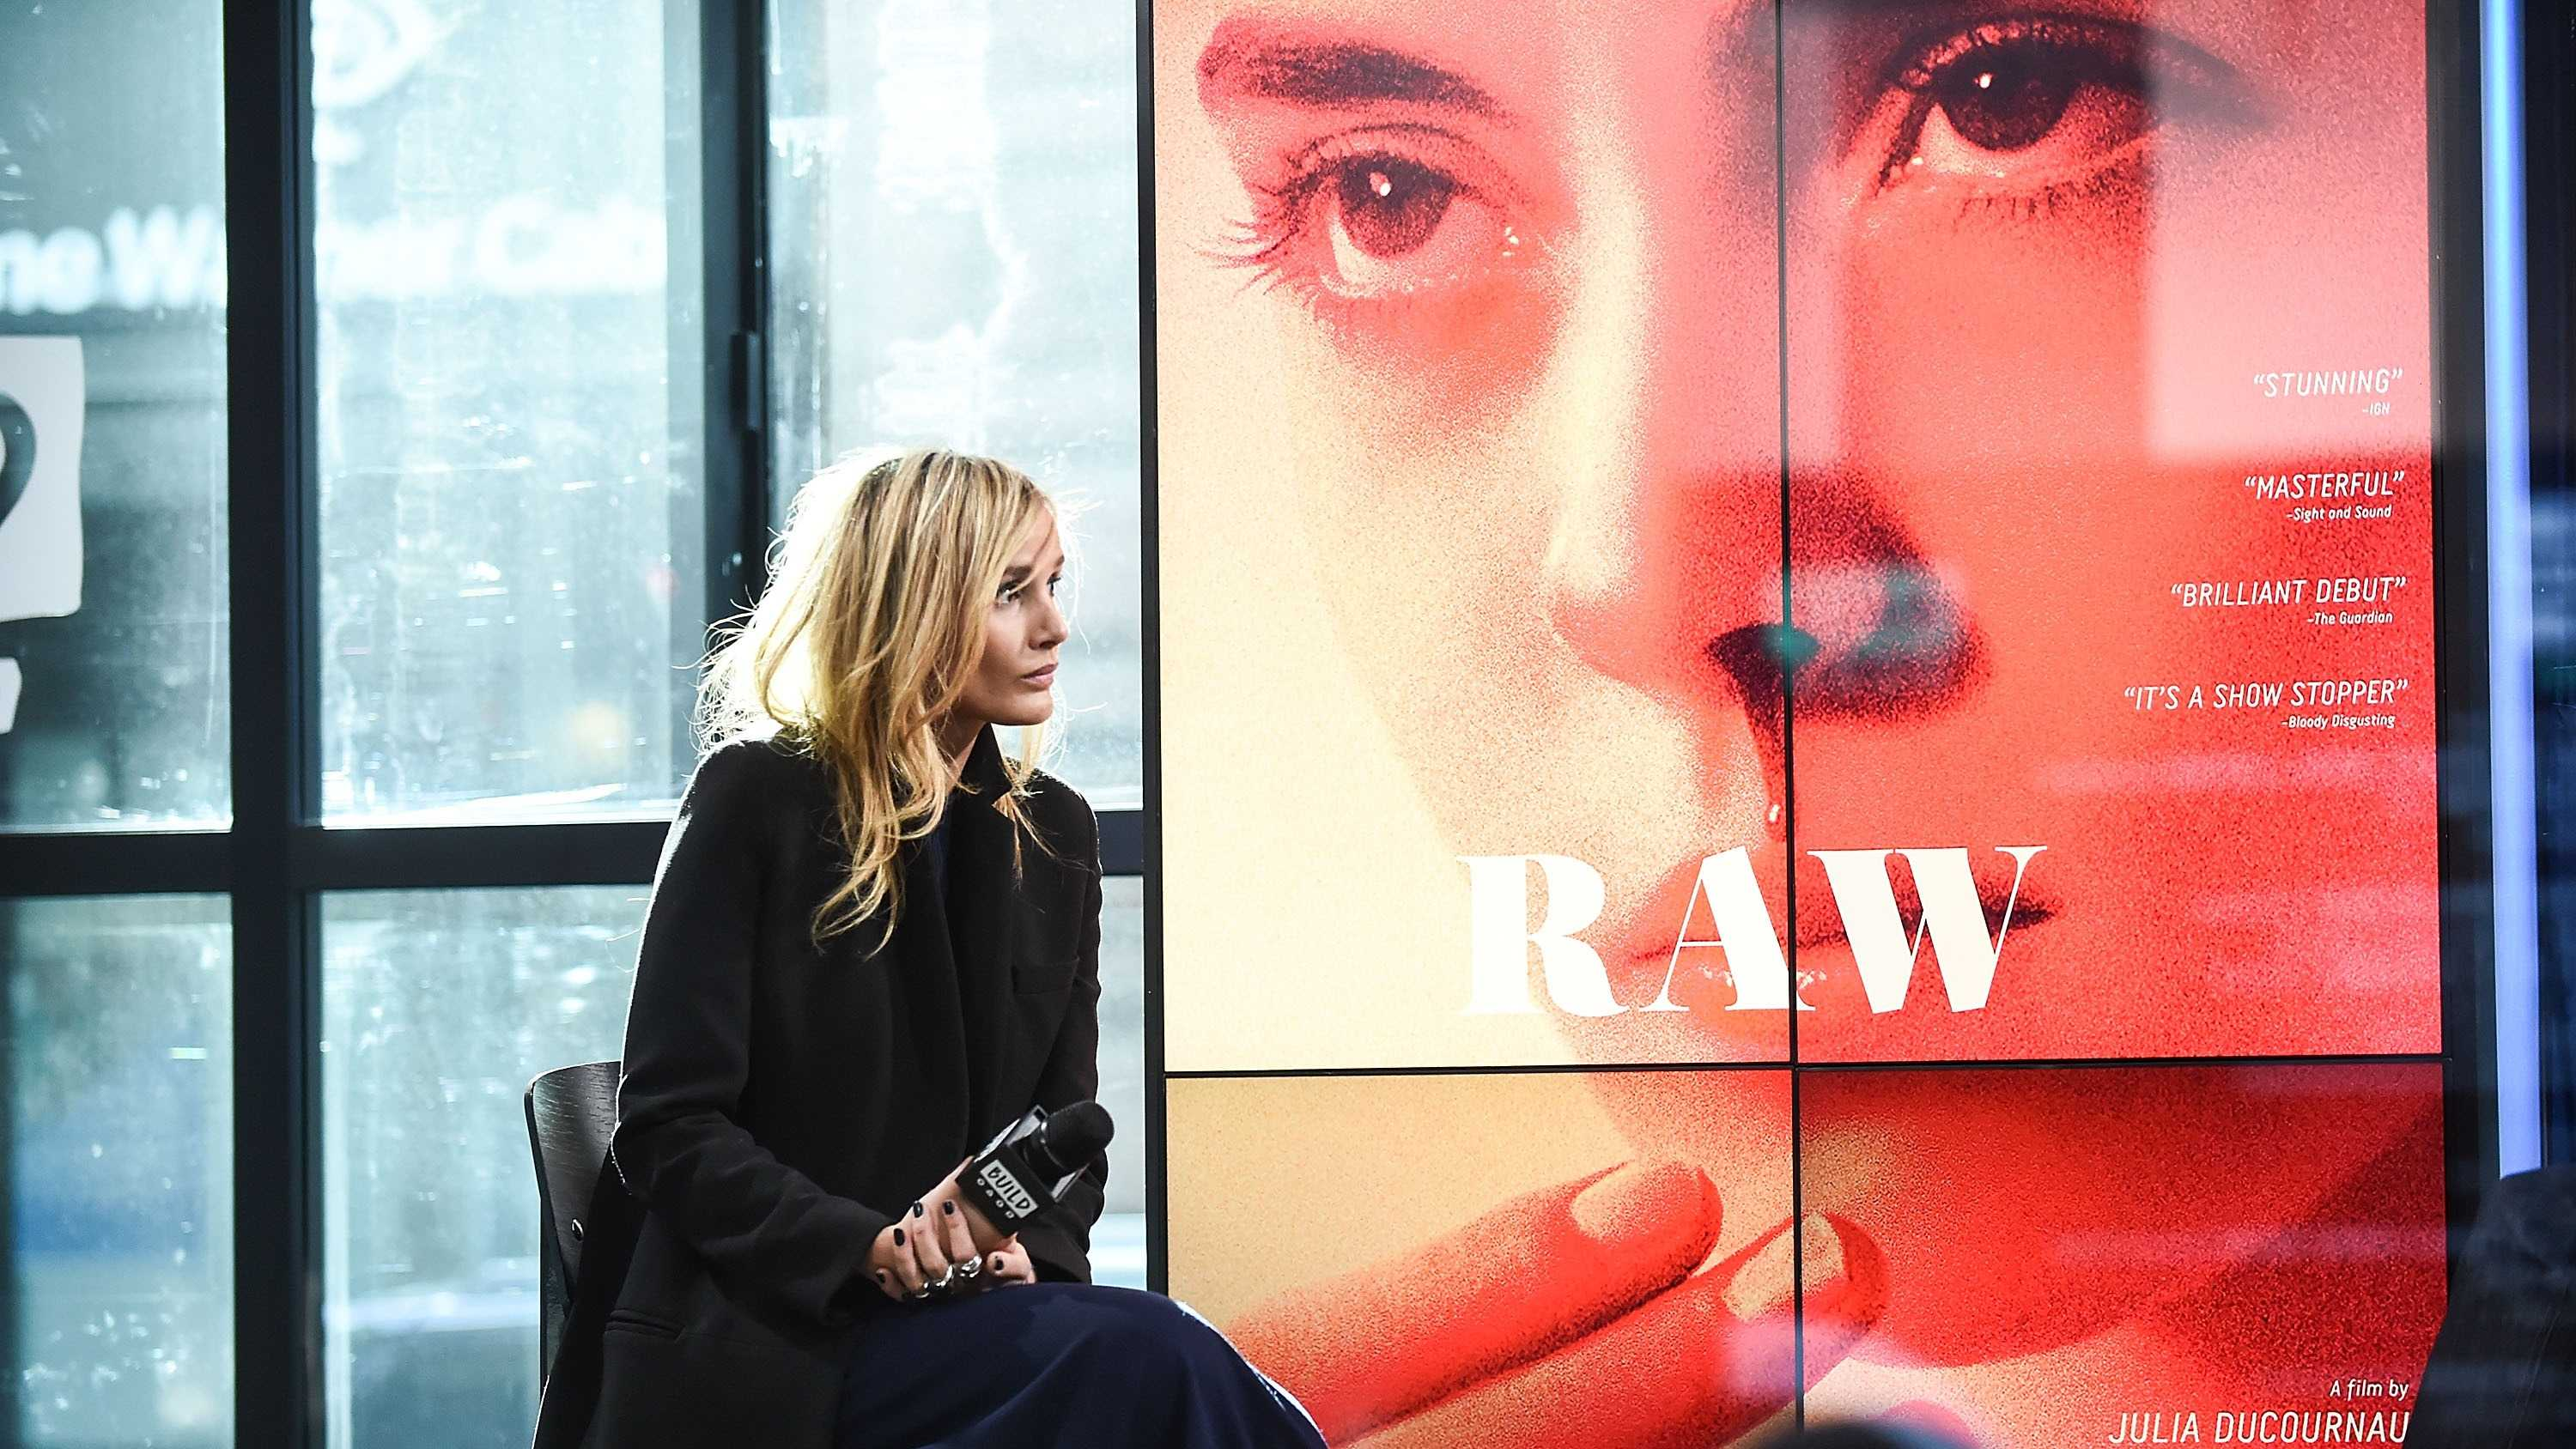 French director of thriller Raw Julia Ducournau